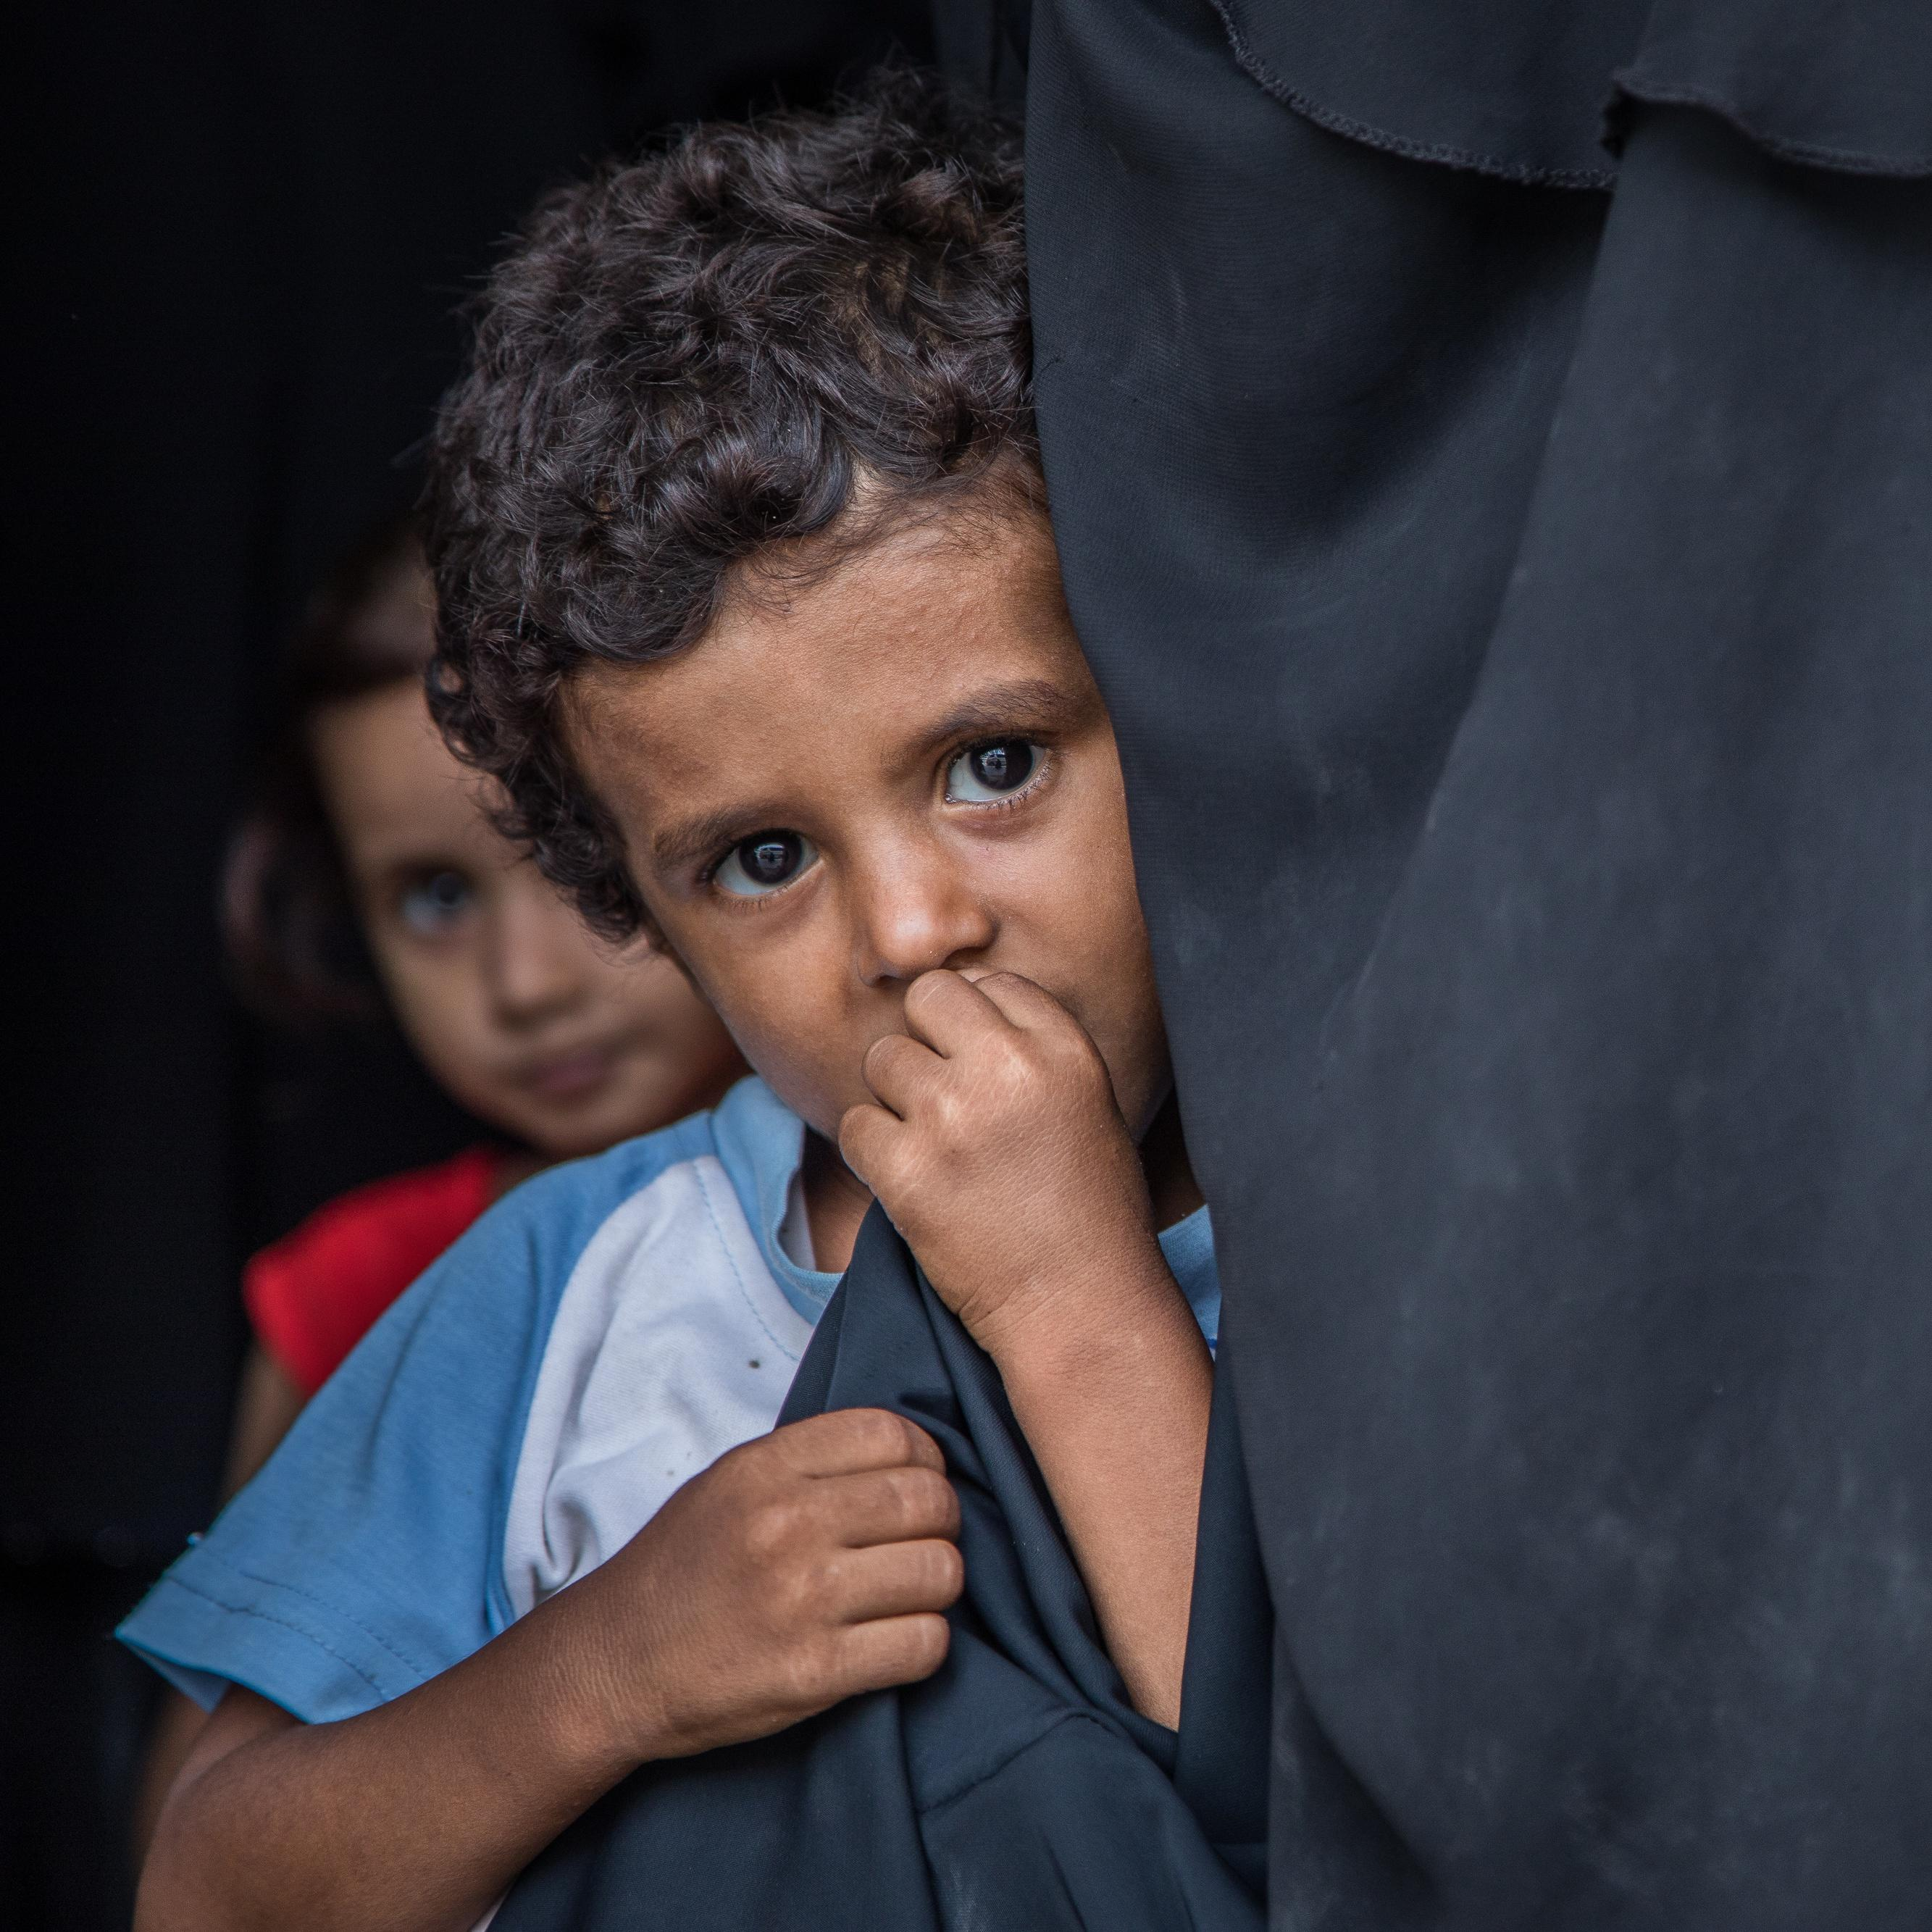 A young boy hiding behind a curtain